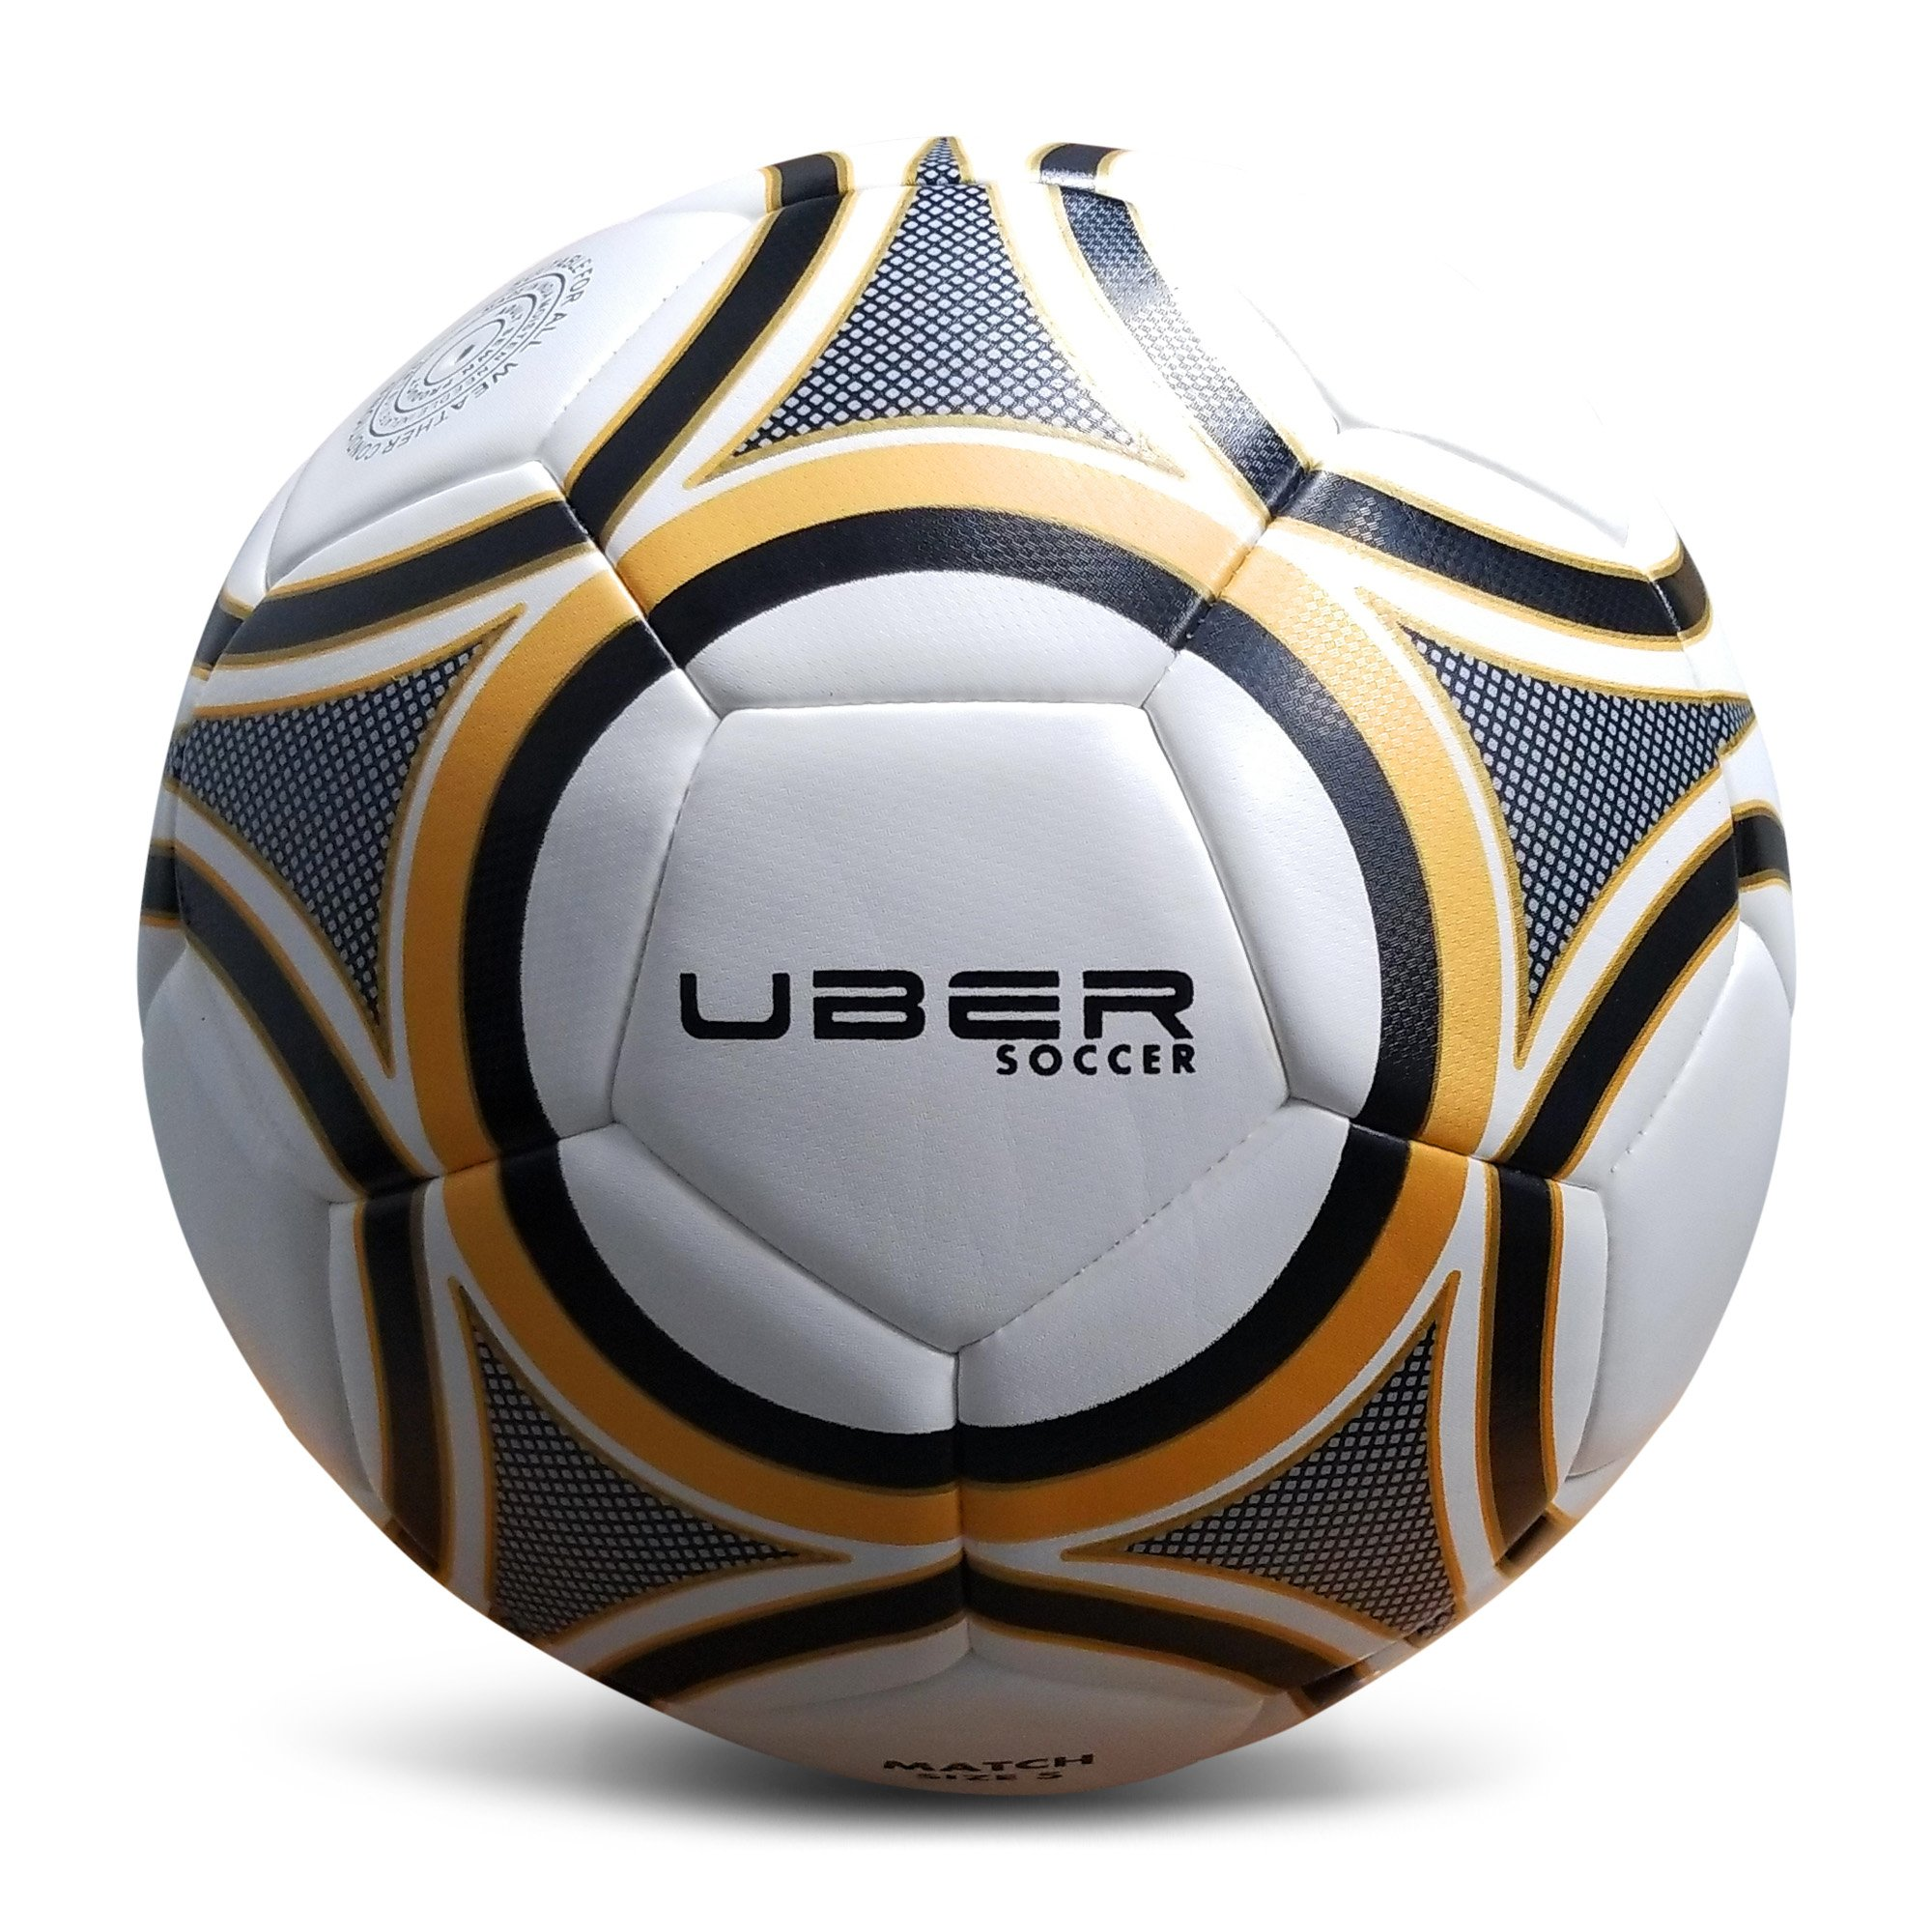 Gold//Black Latex Bladder Size 3//4//5 Synthetic Leather Uber Soccer Thermofusion Match Soccer Ball Hand Stitched